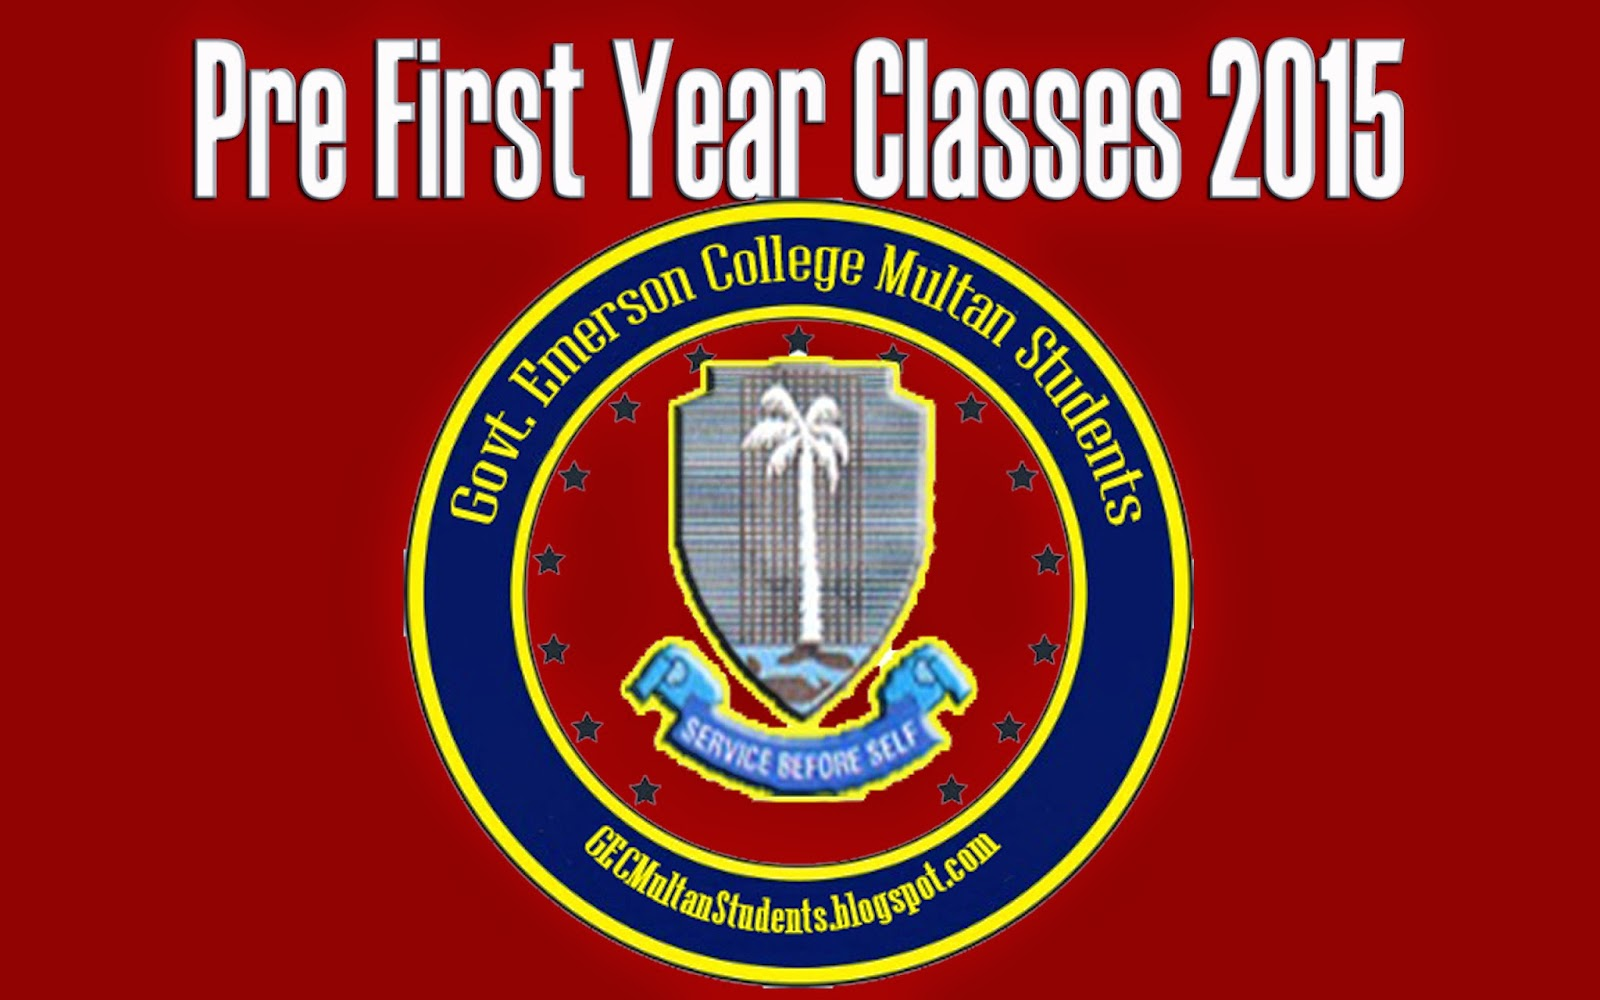 pre first year classes 2015 govt emerson college multan students pre first year classes in govt emerson college multan